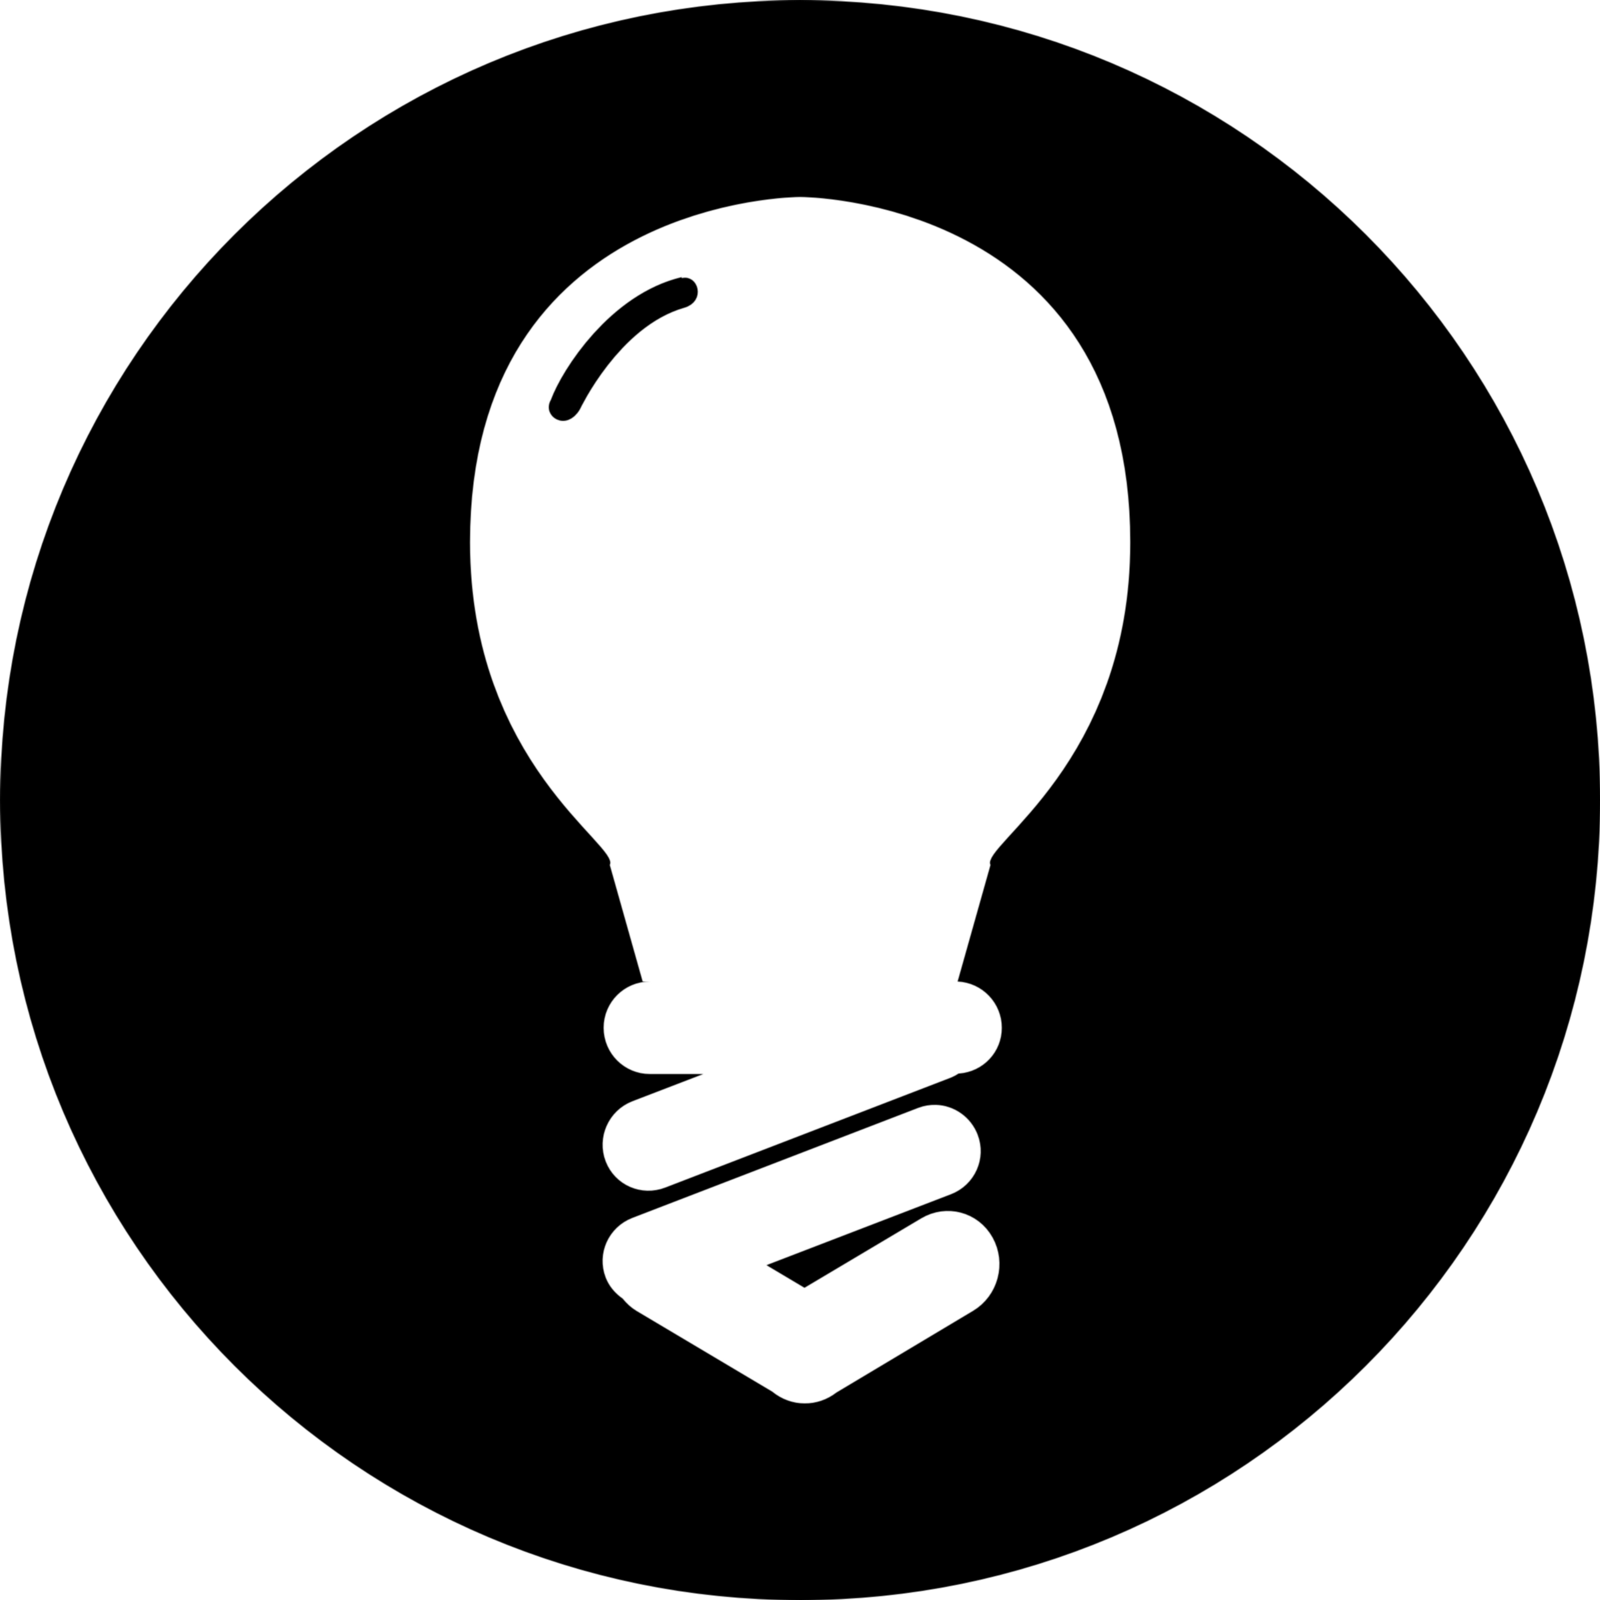 Conclusion clipart lightbulb. Immediacy hypermediacy and remediation